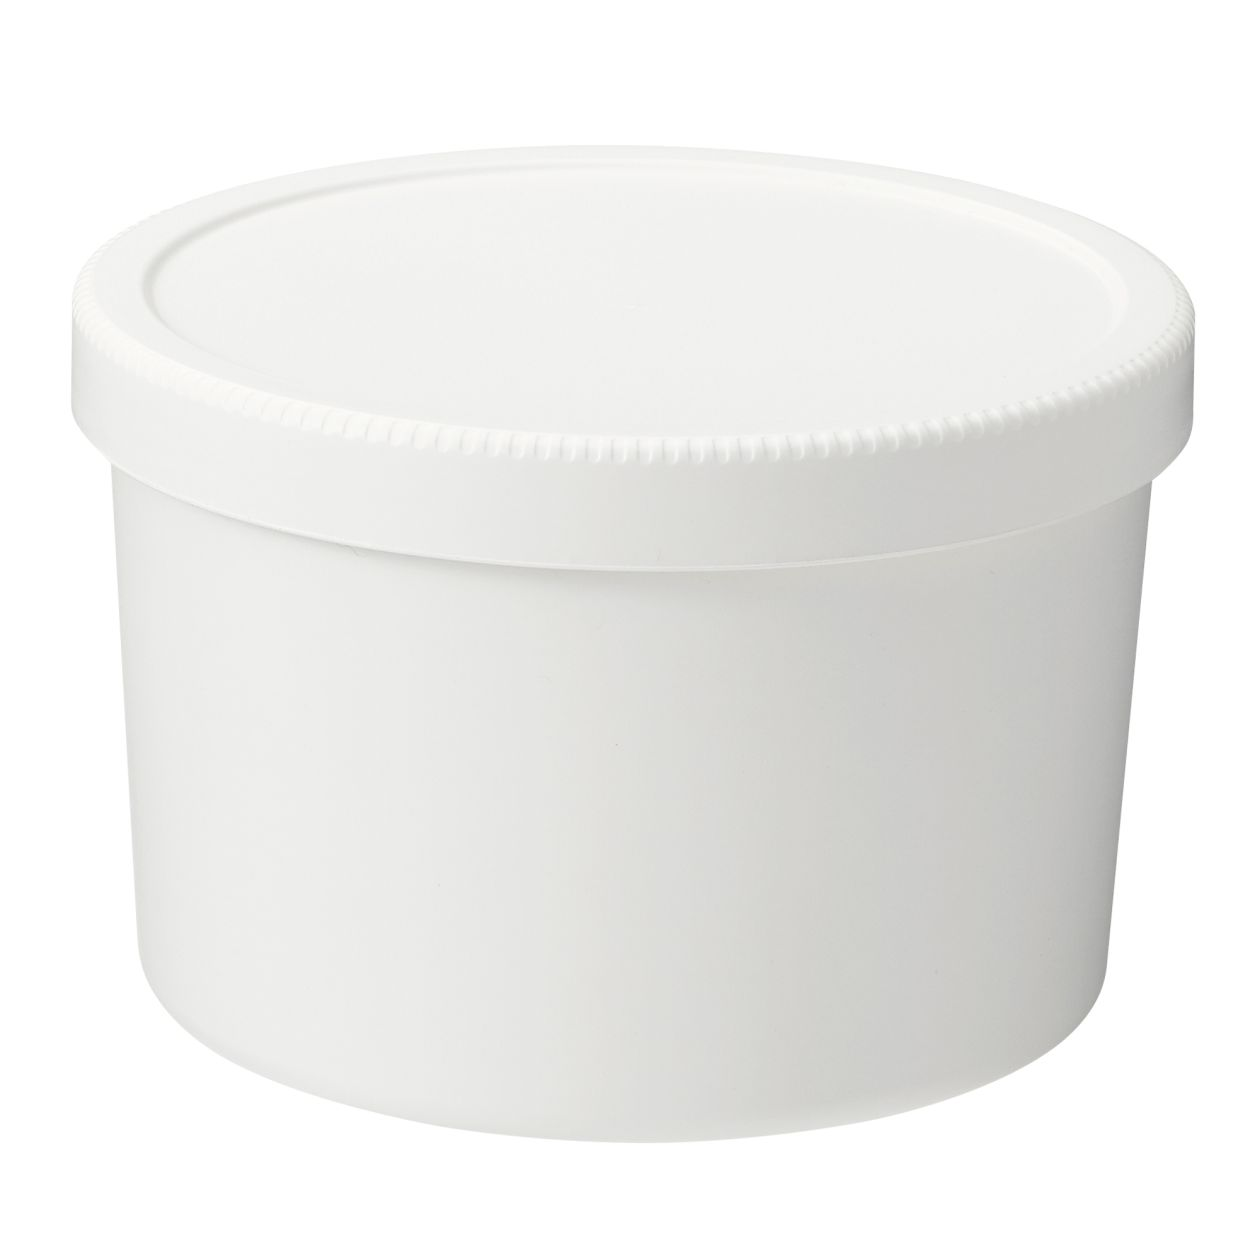 PP LUNCH BOX WITH SCREW LID / ROUND / WHITE / 460ml